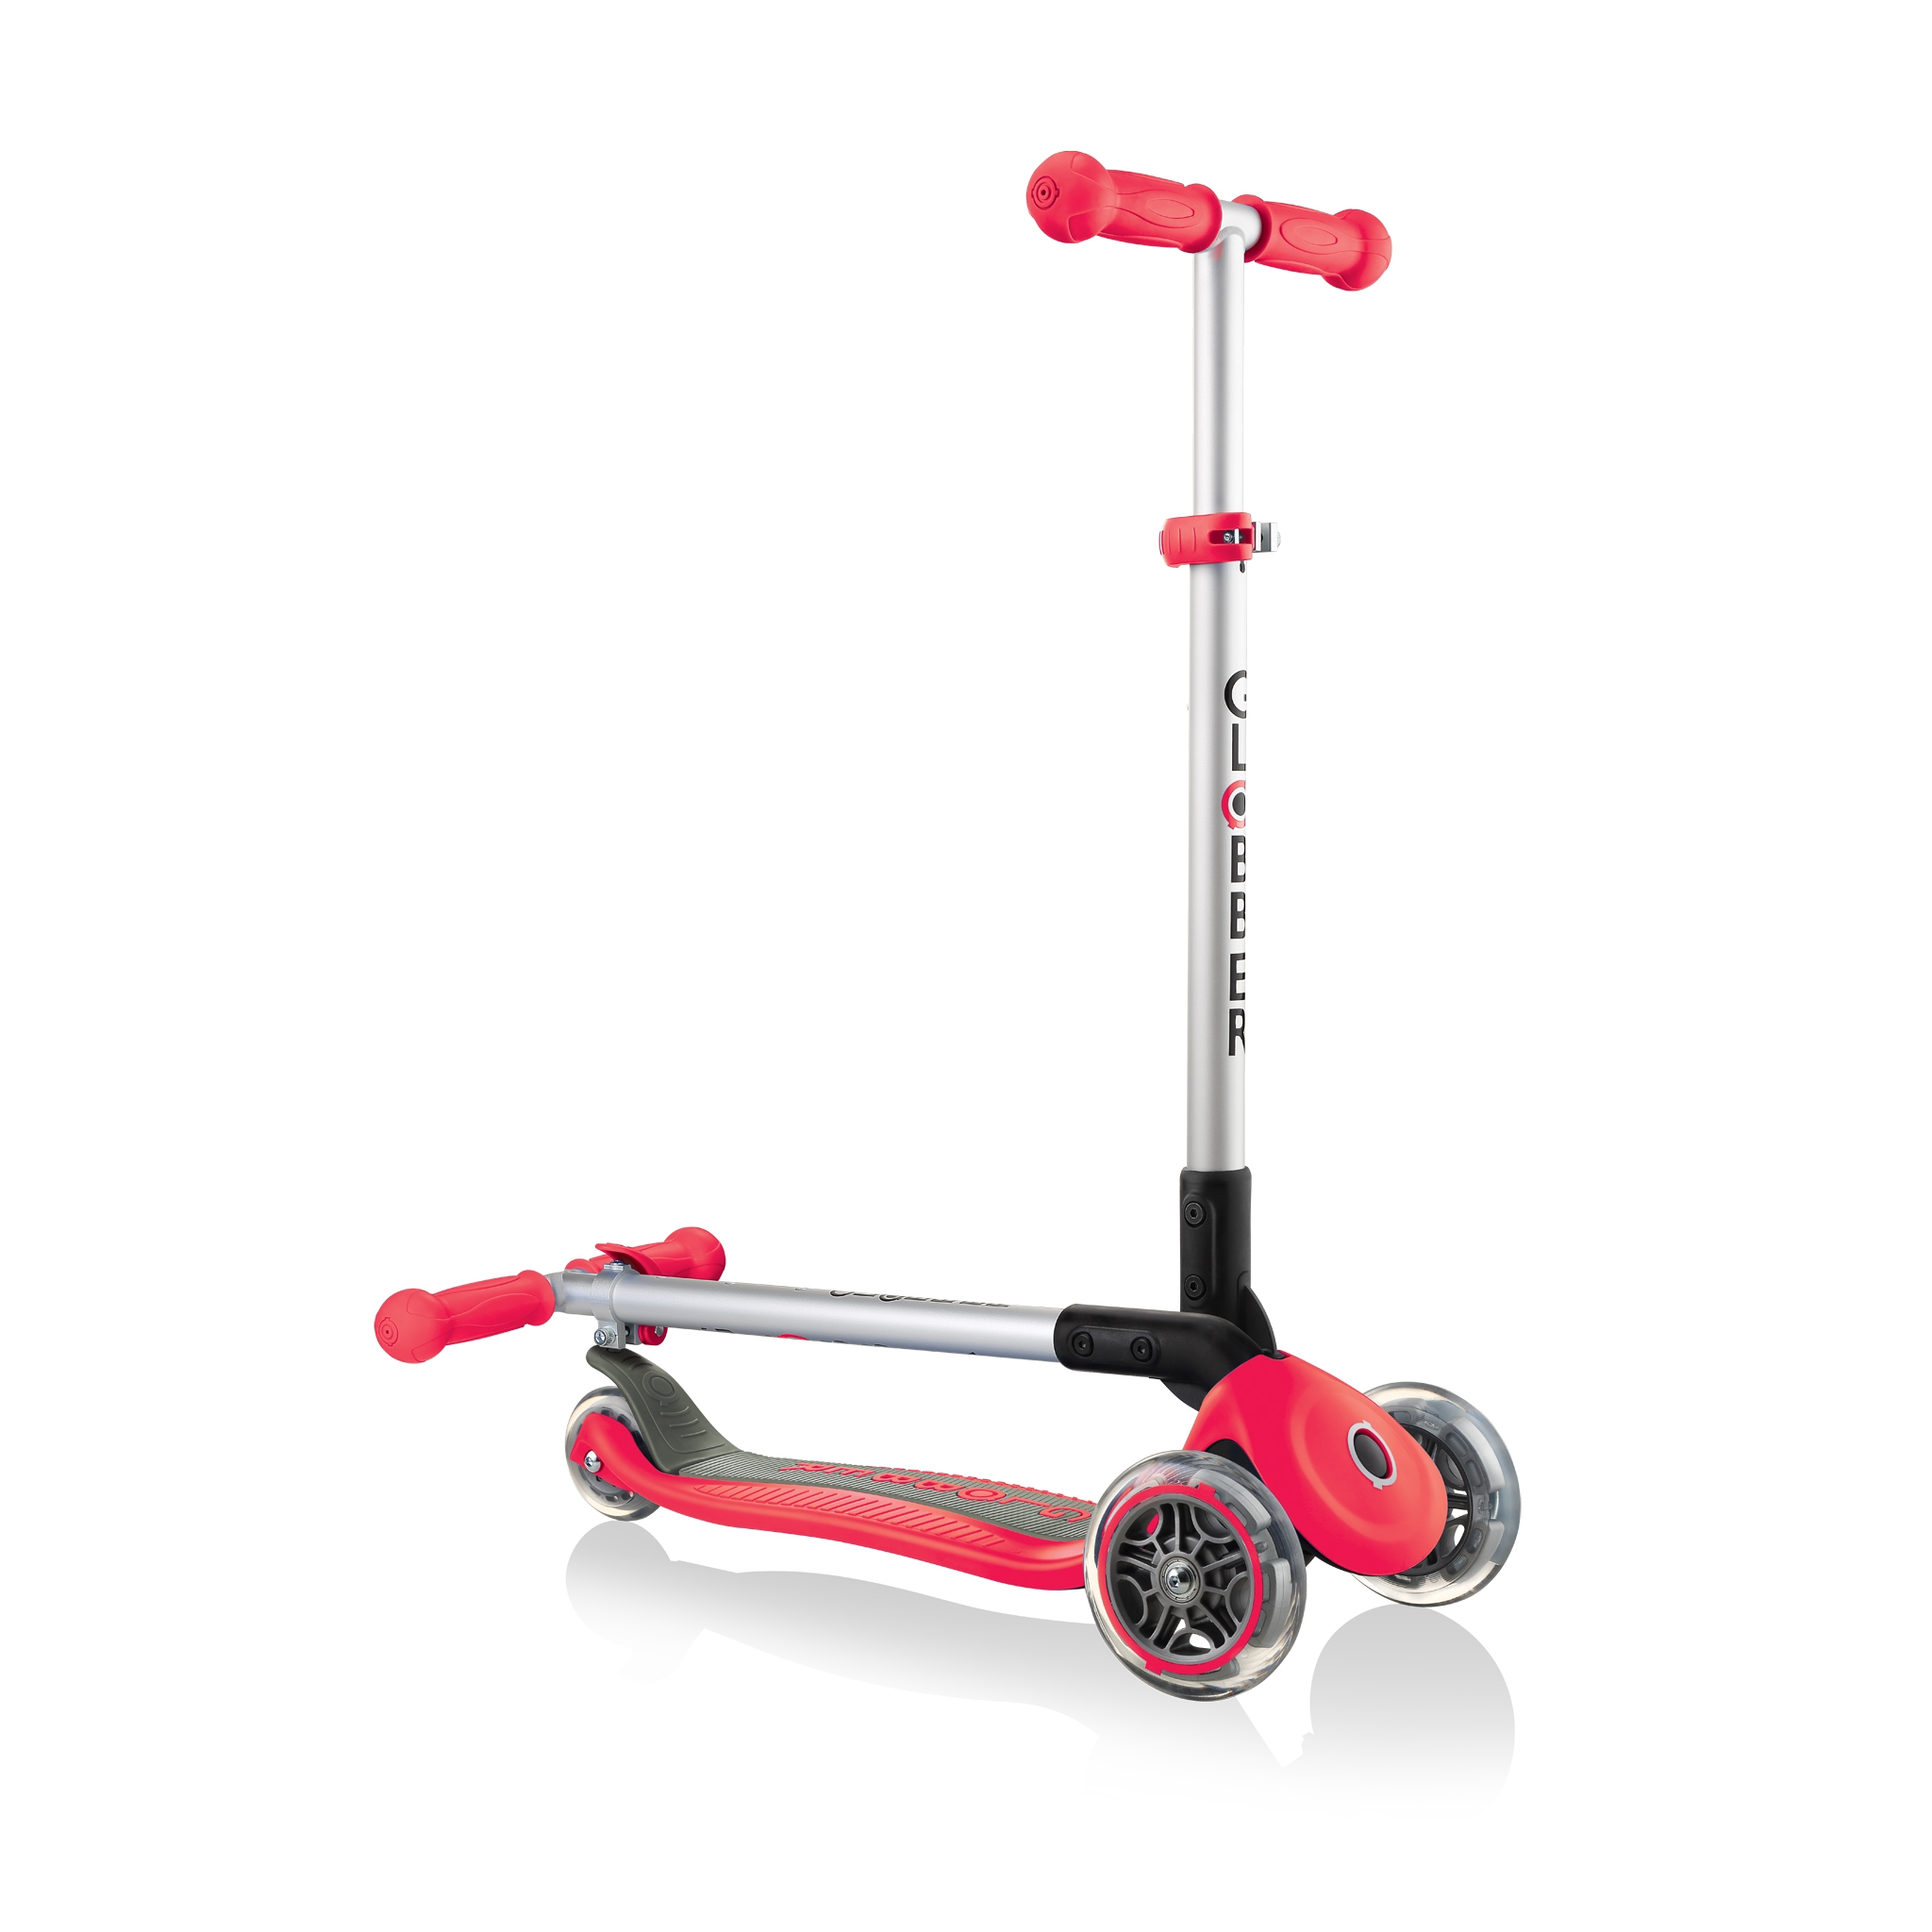 PRIMO-FOLDABLE-3-wheel-fold-up-scooter-for-kids-new-red